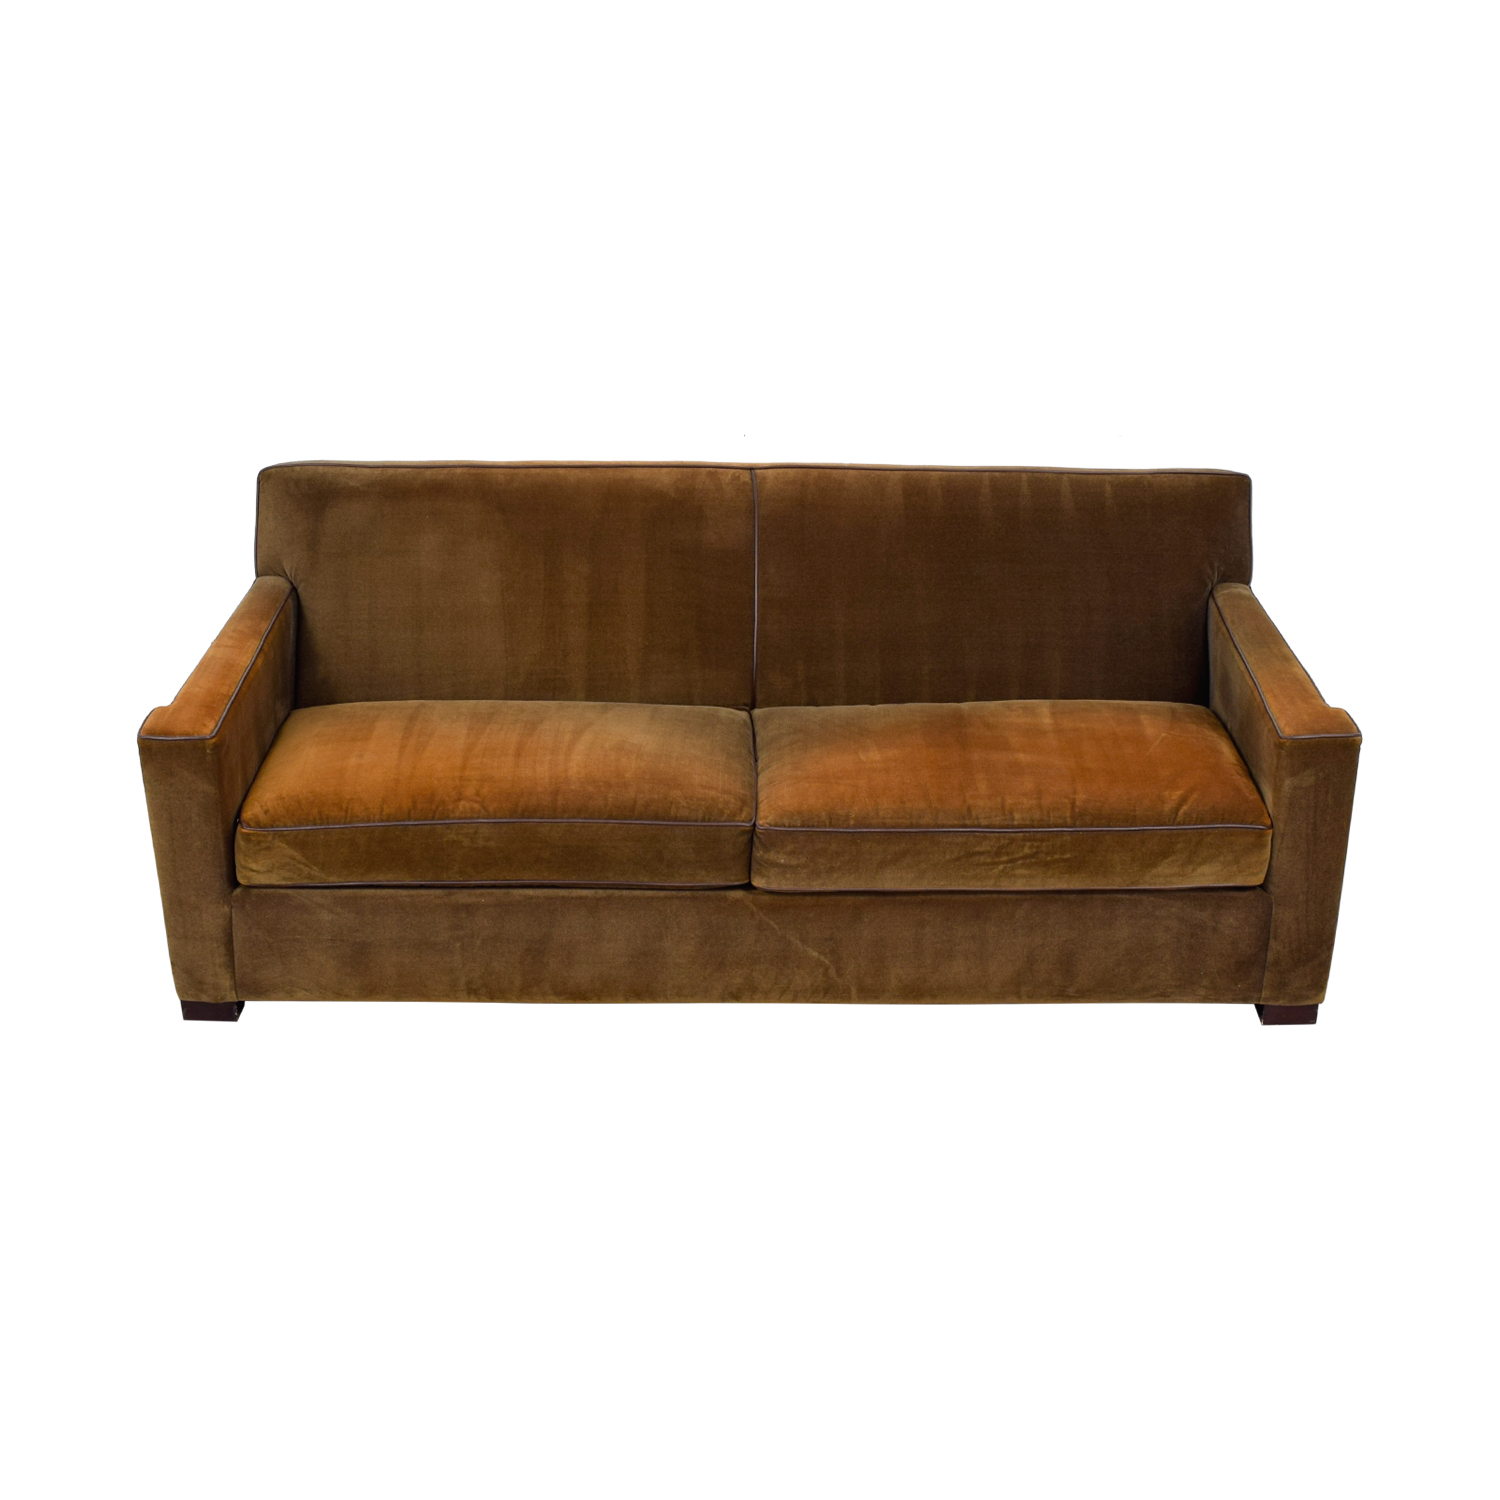 Crate & Barrel Chocolate Brown Sofa sale